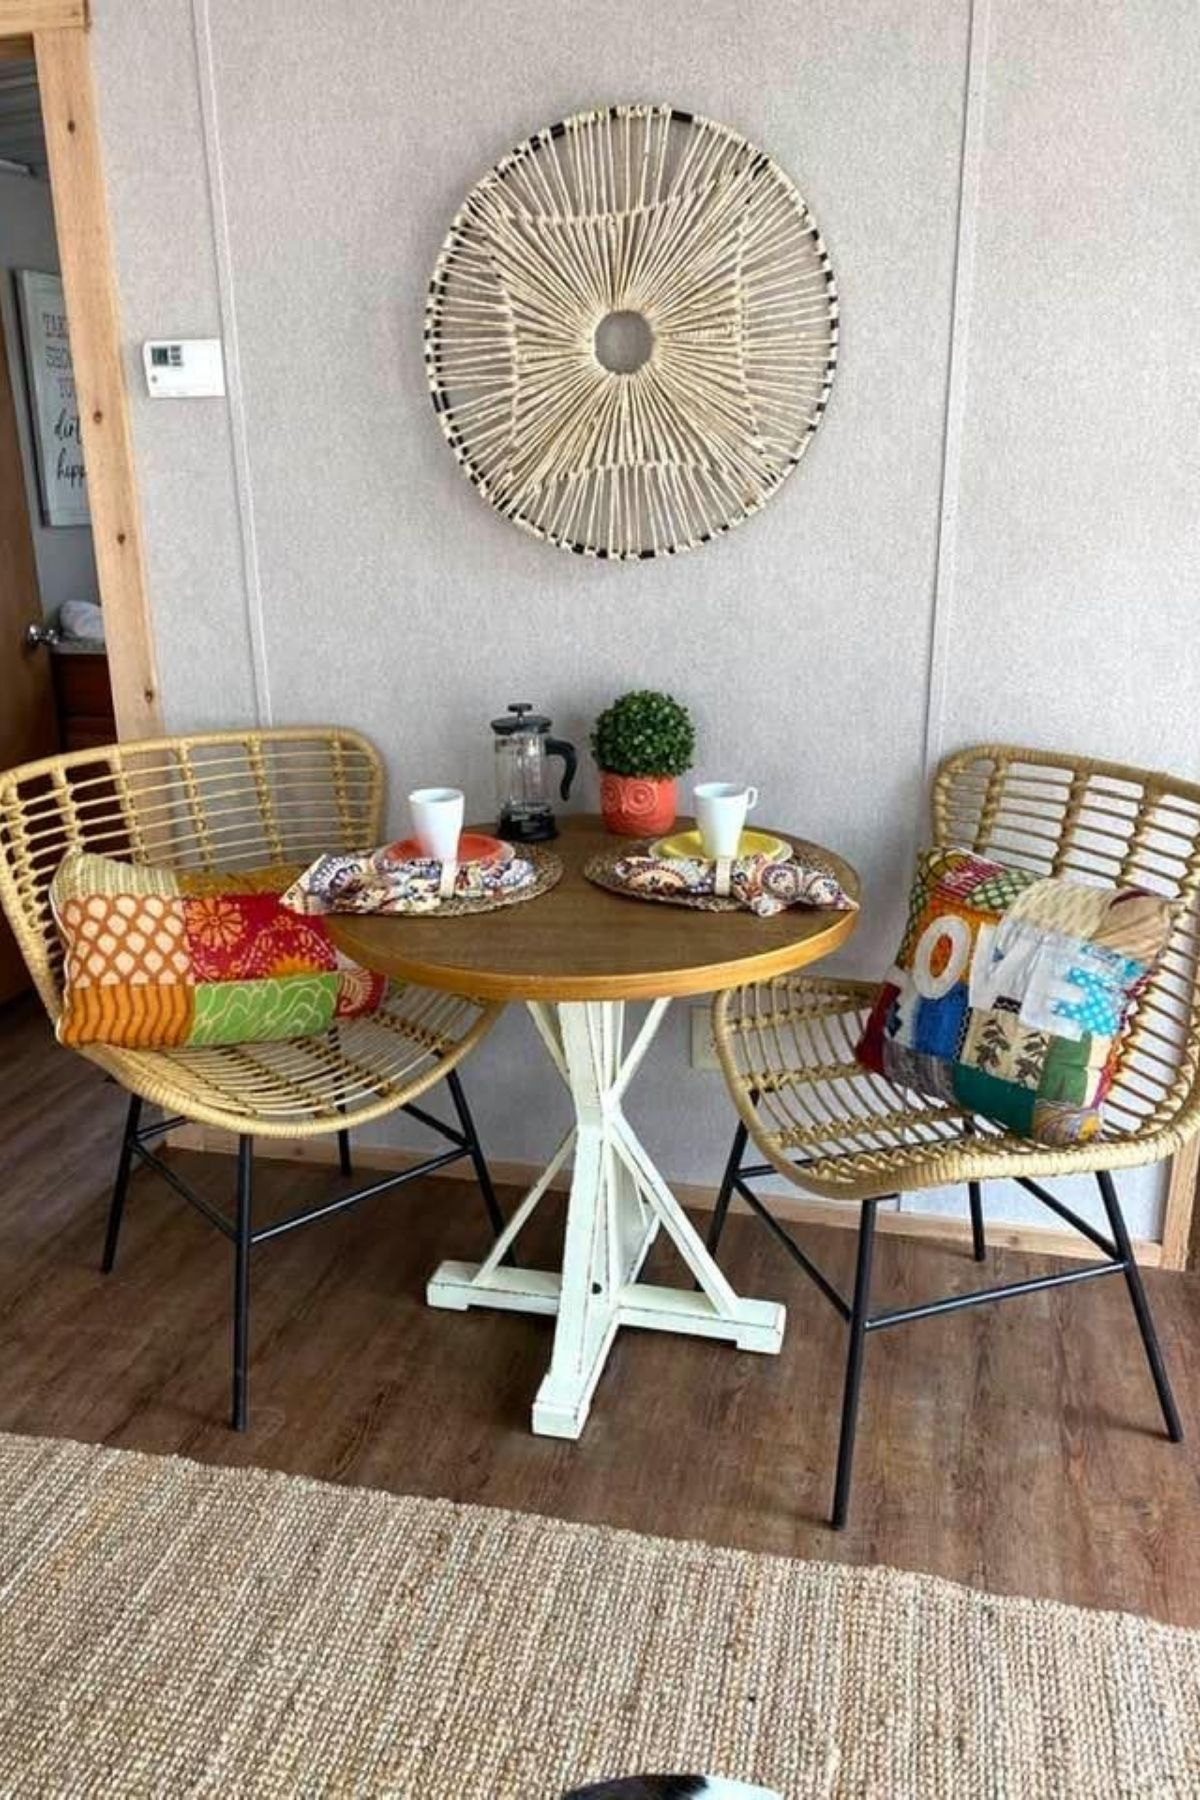 Round table with wicker chairs in front of cream wall with round decor